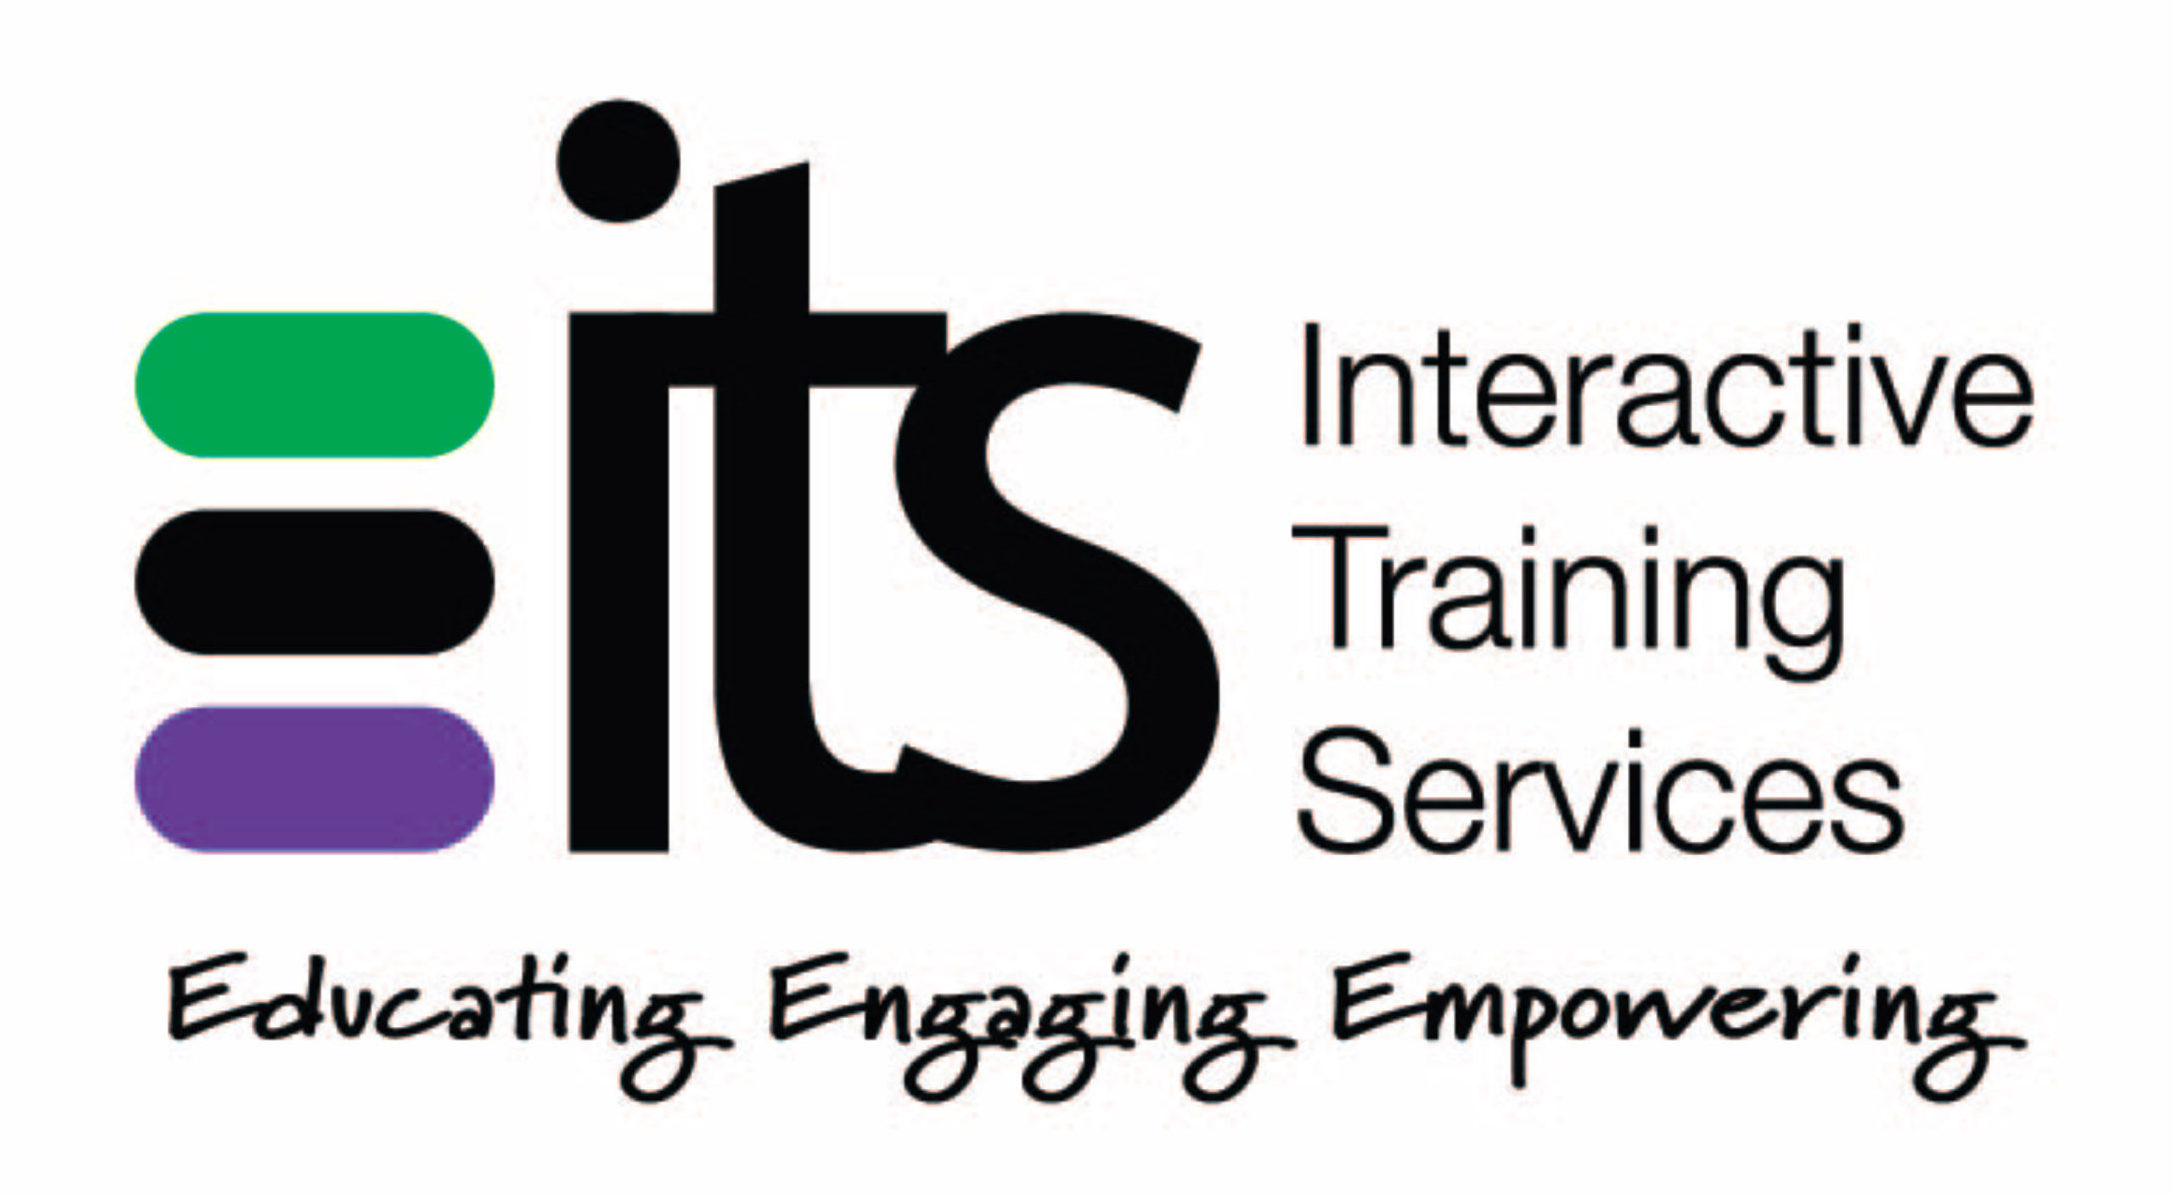 Interactive Training Services